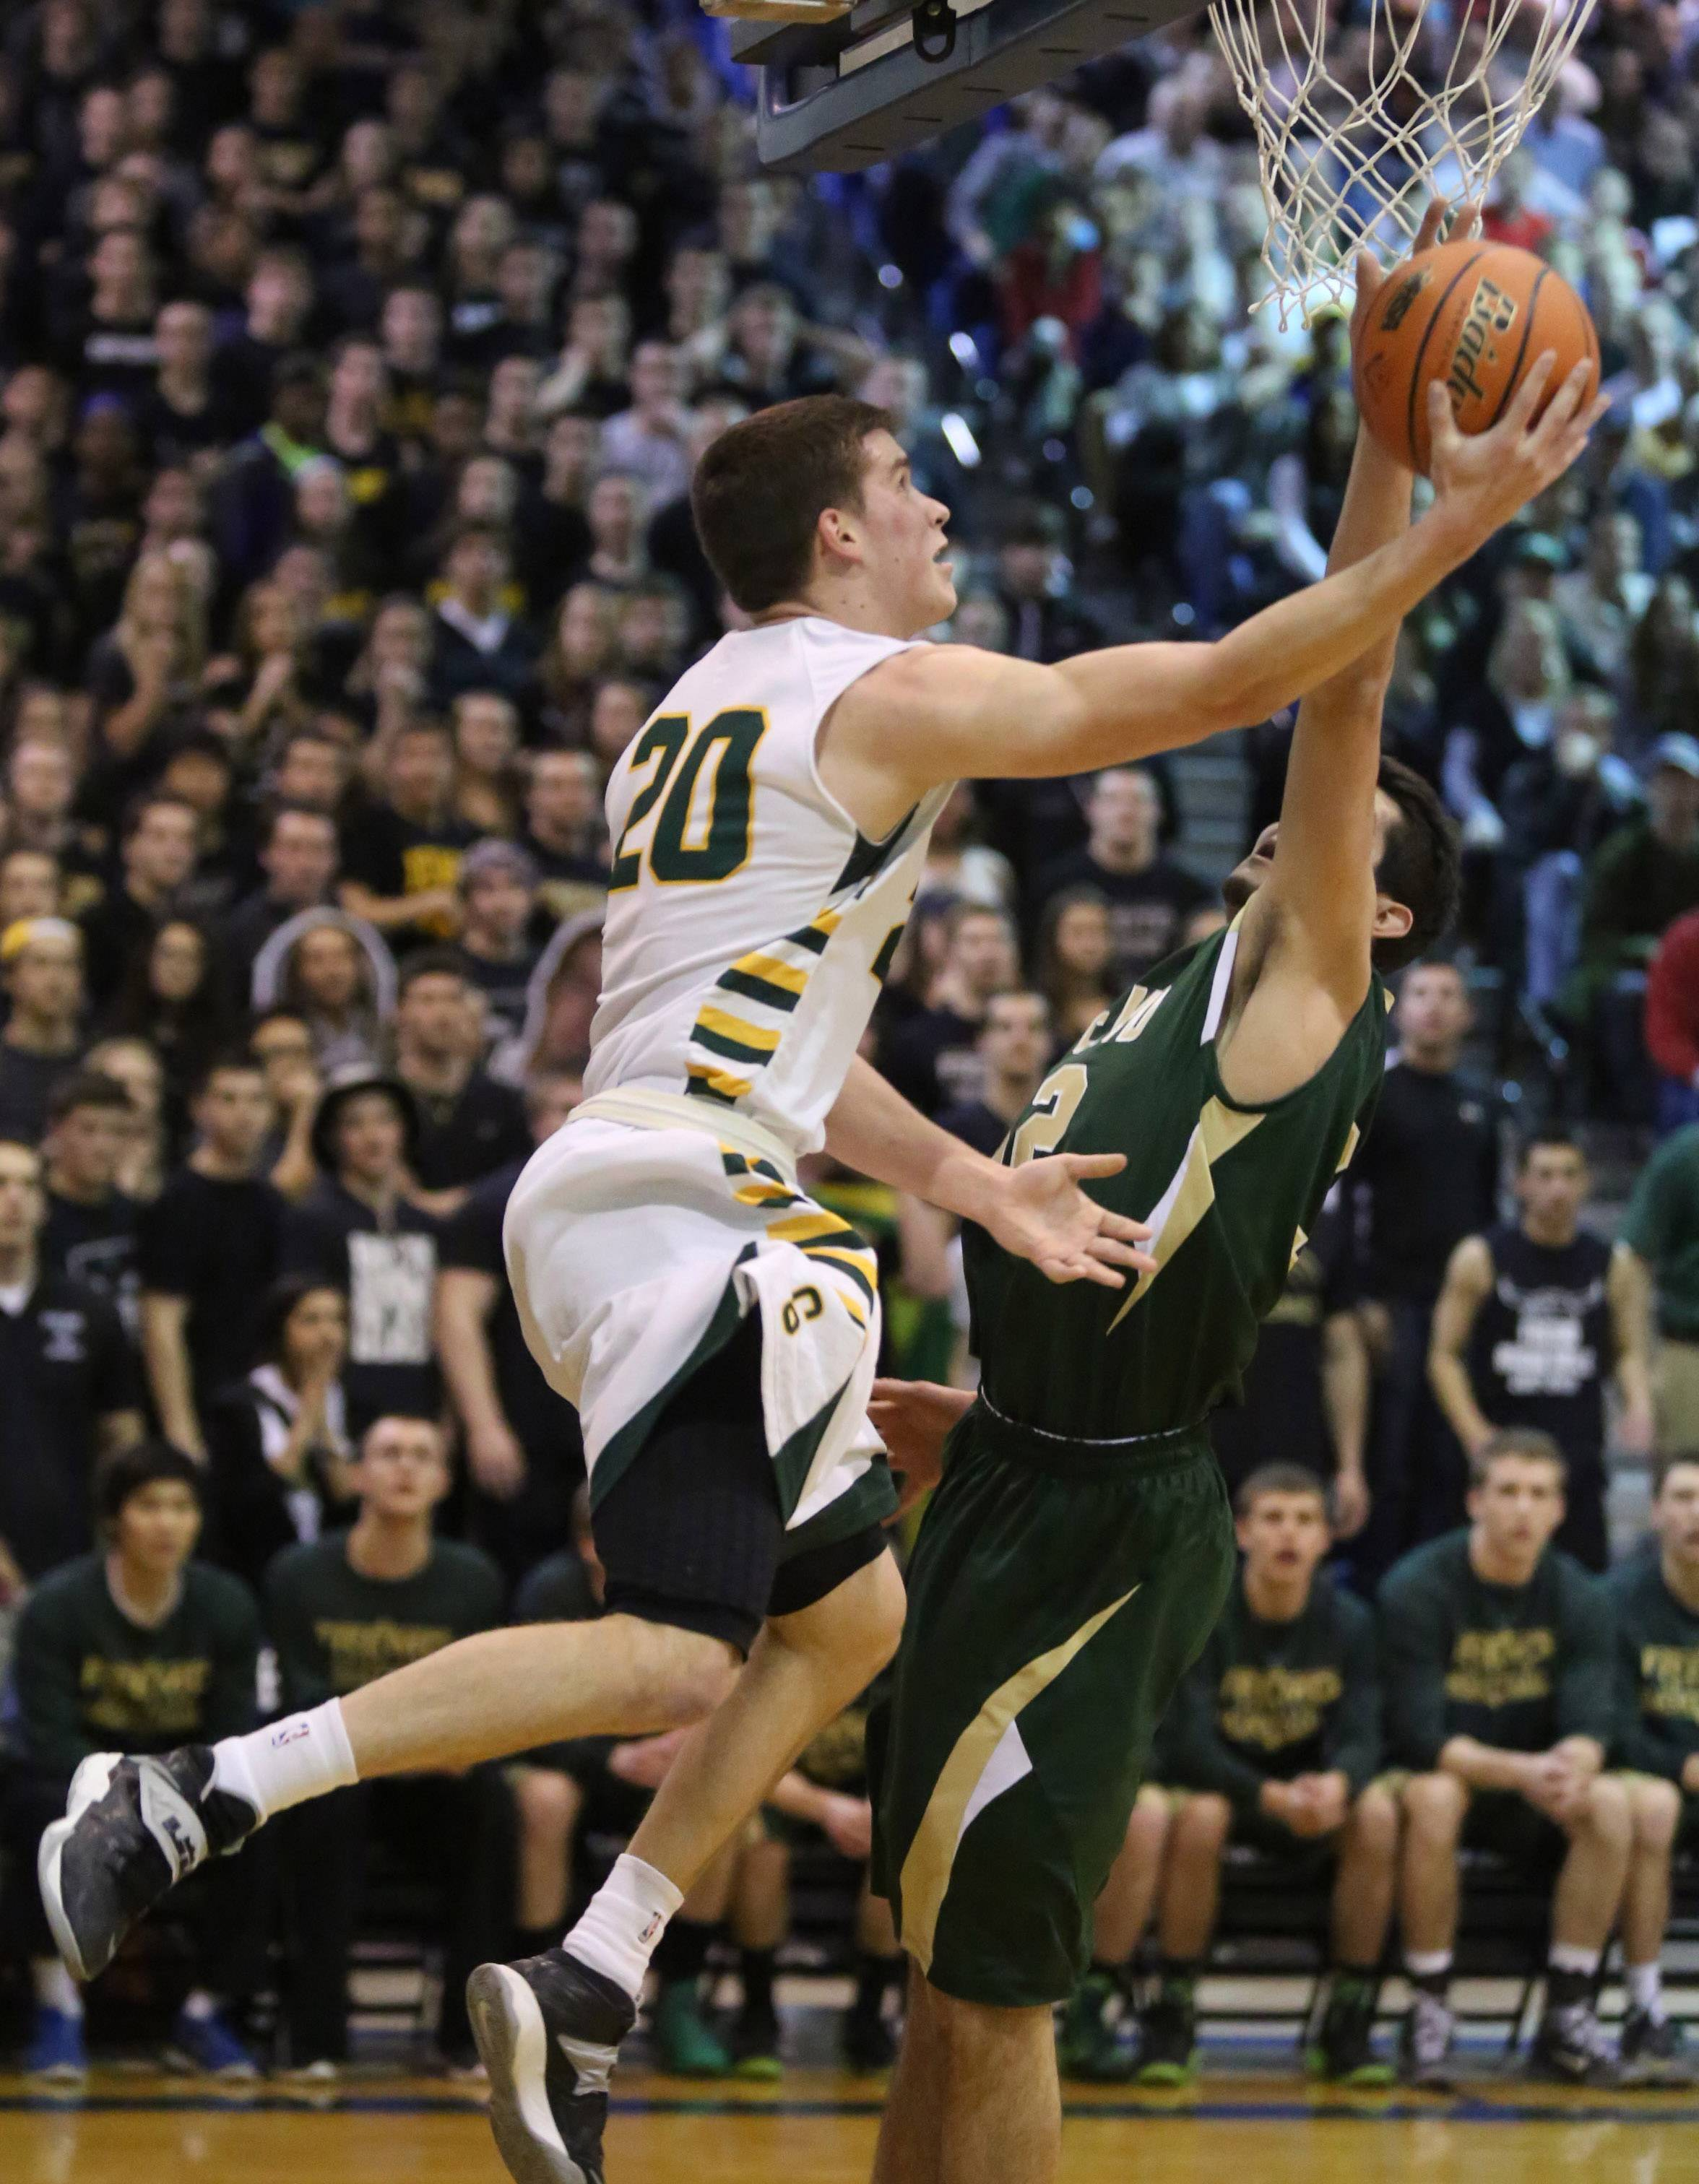 Stevenson guard Matt Morrissey lays the ball up against Fremd during the Patriots' victory in Friday's Lake Zurich sectional championship game.